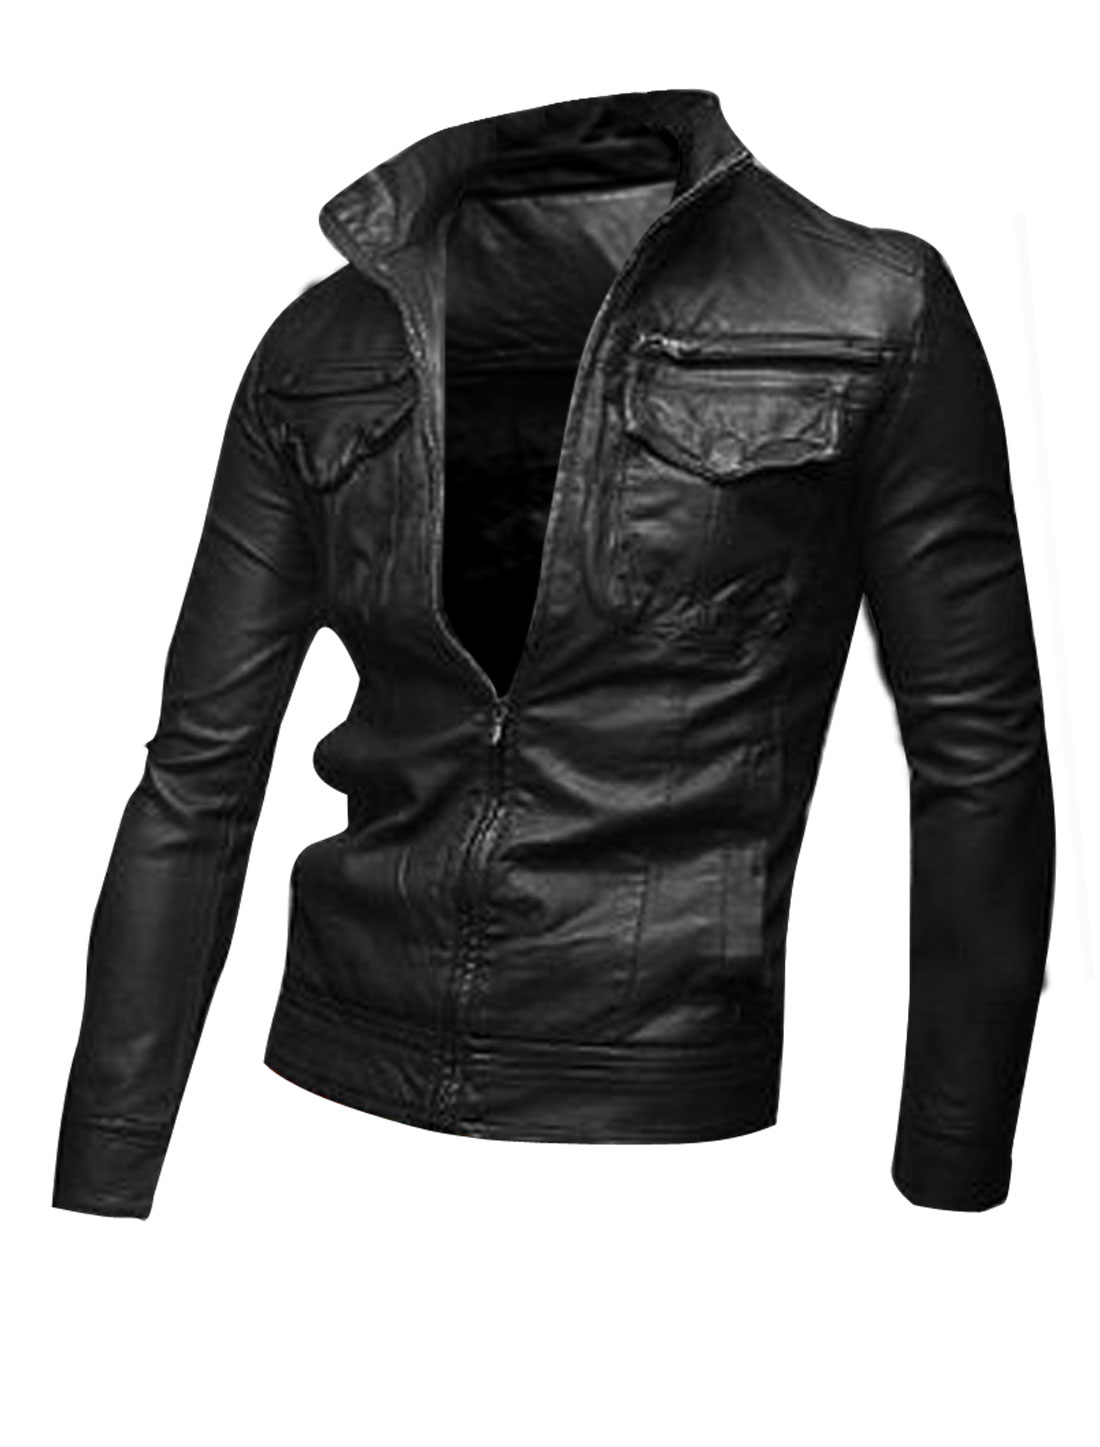 Man Pure Black Color 4 Pockets Design Front Faux Leather Jacket Coat M